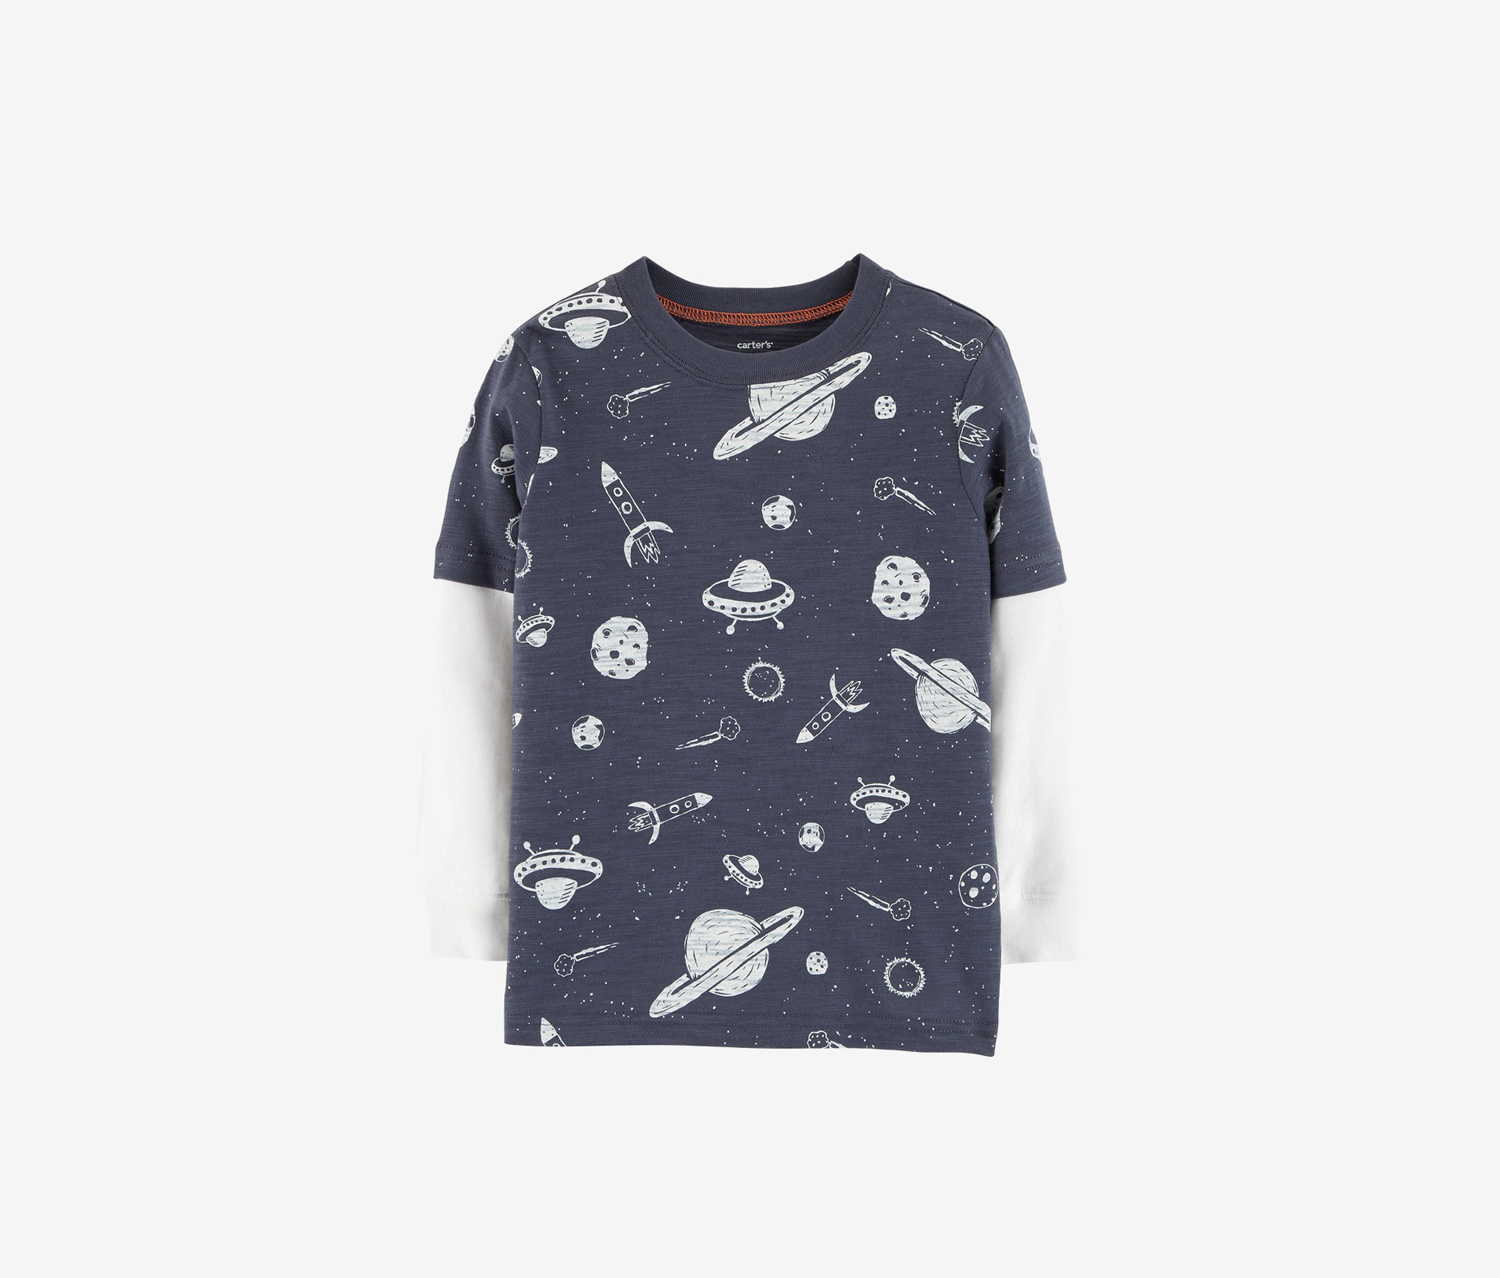 Toddler Boys Space Layered-Look Cotton Shirt, Navy/White